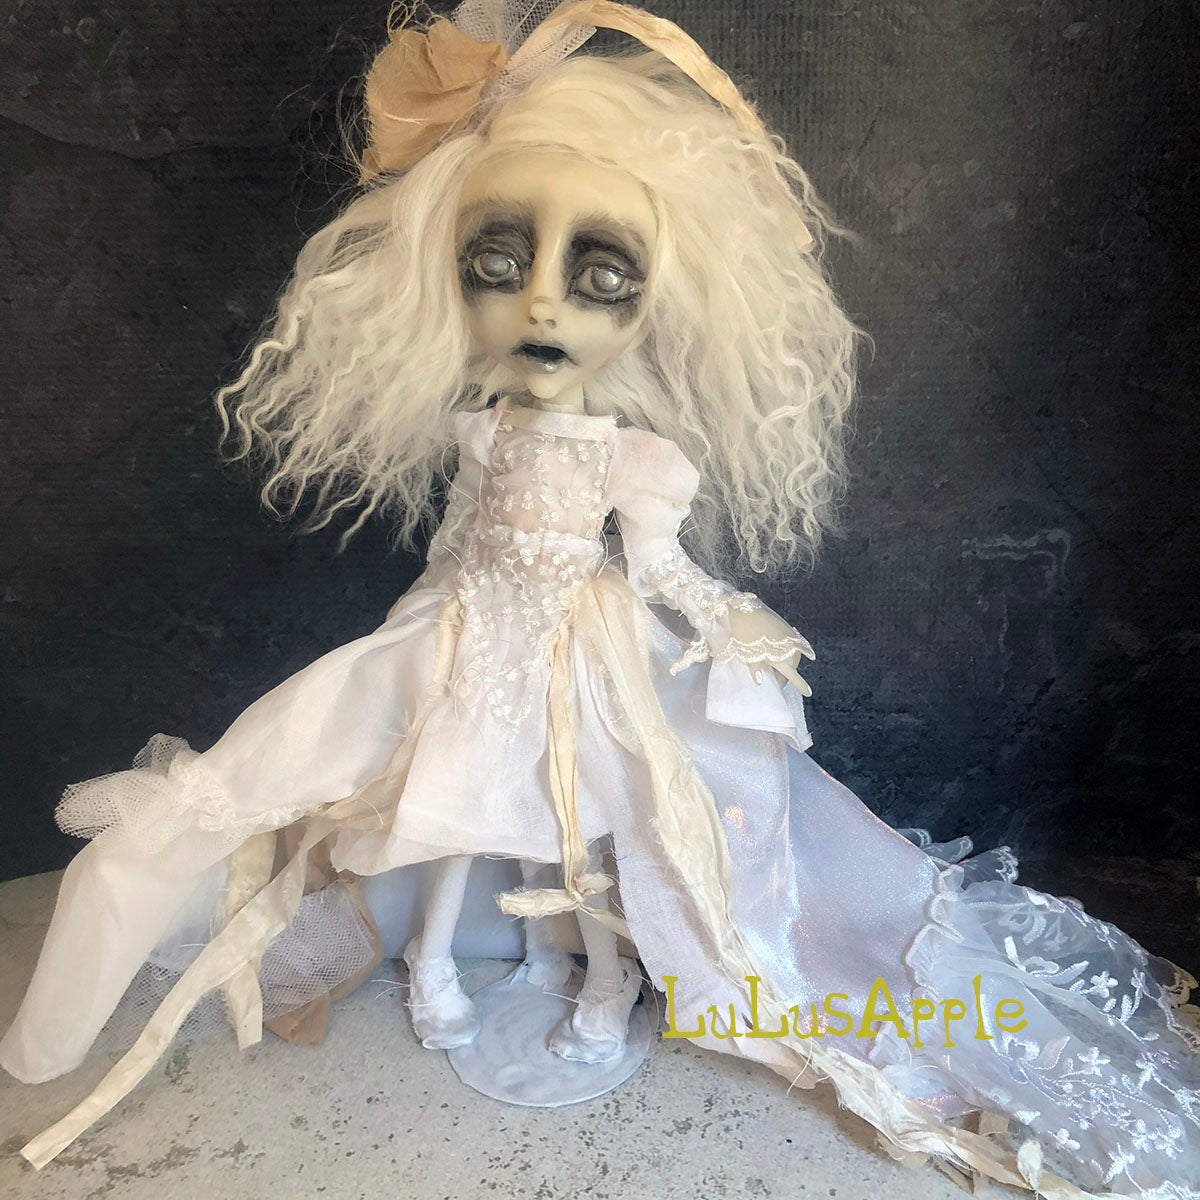 Triste full of sorrows the poltergeist Gothic Victorian LuLusApple Art Doll